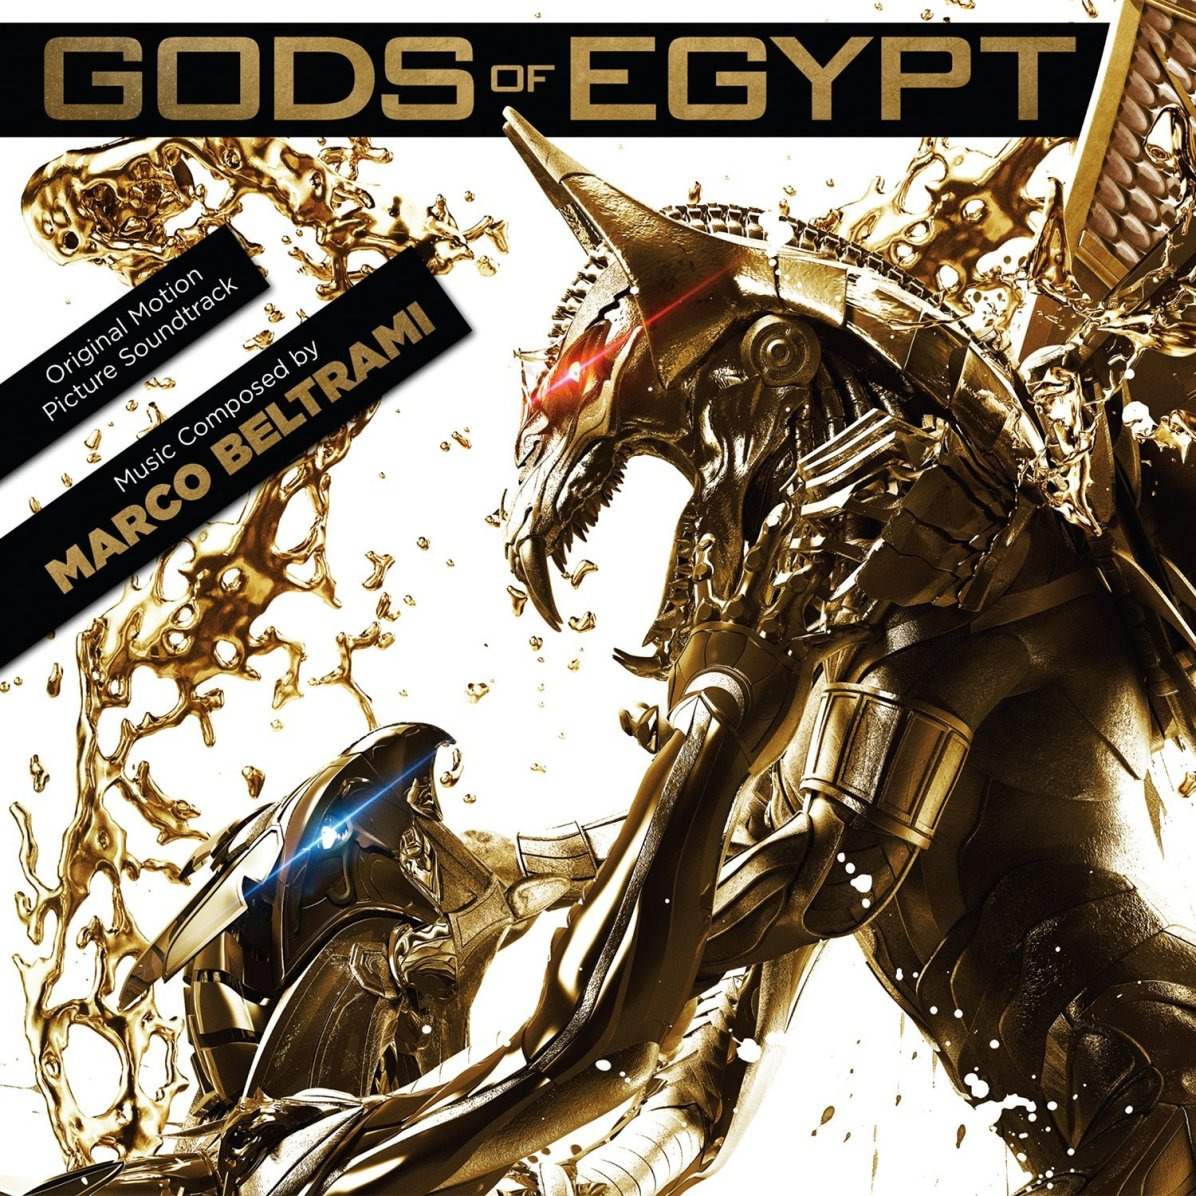 #1: Gods of Egypt (Original)